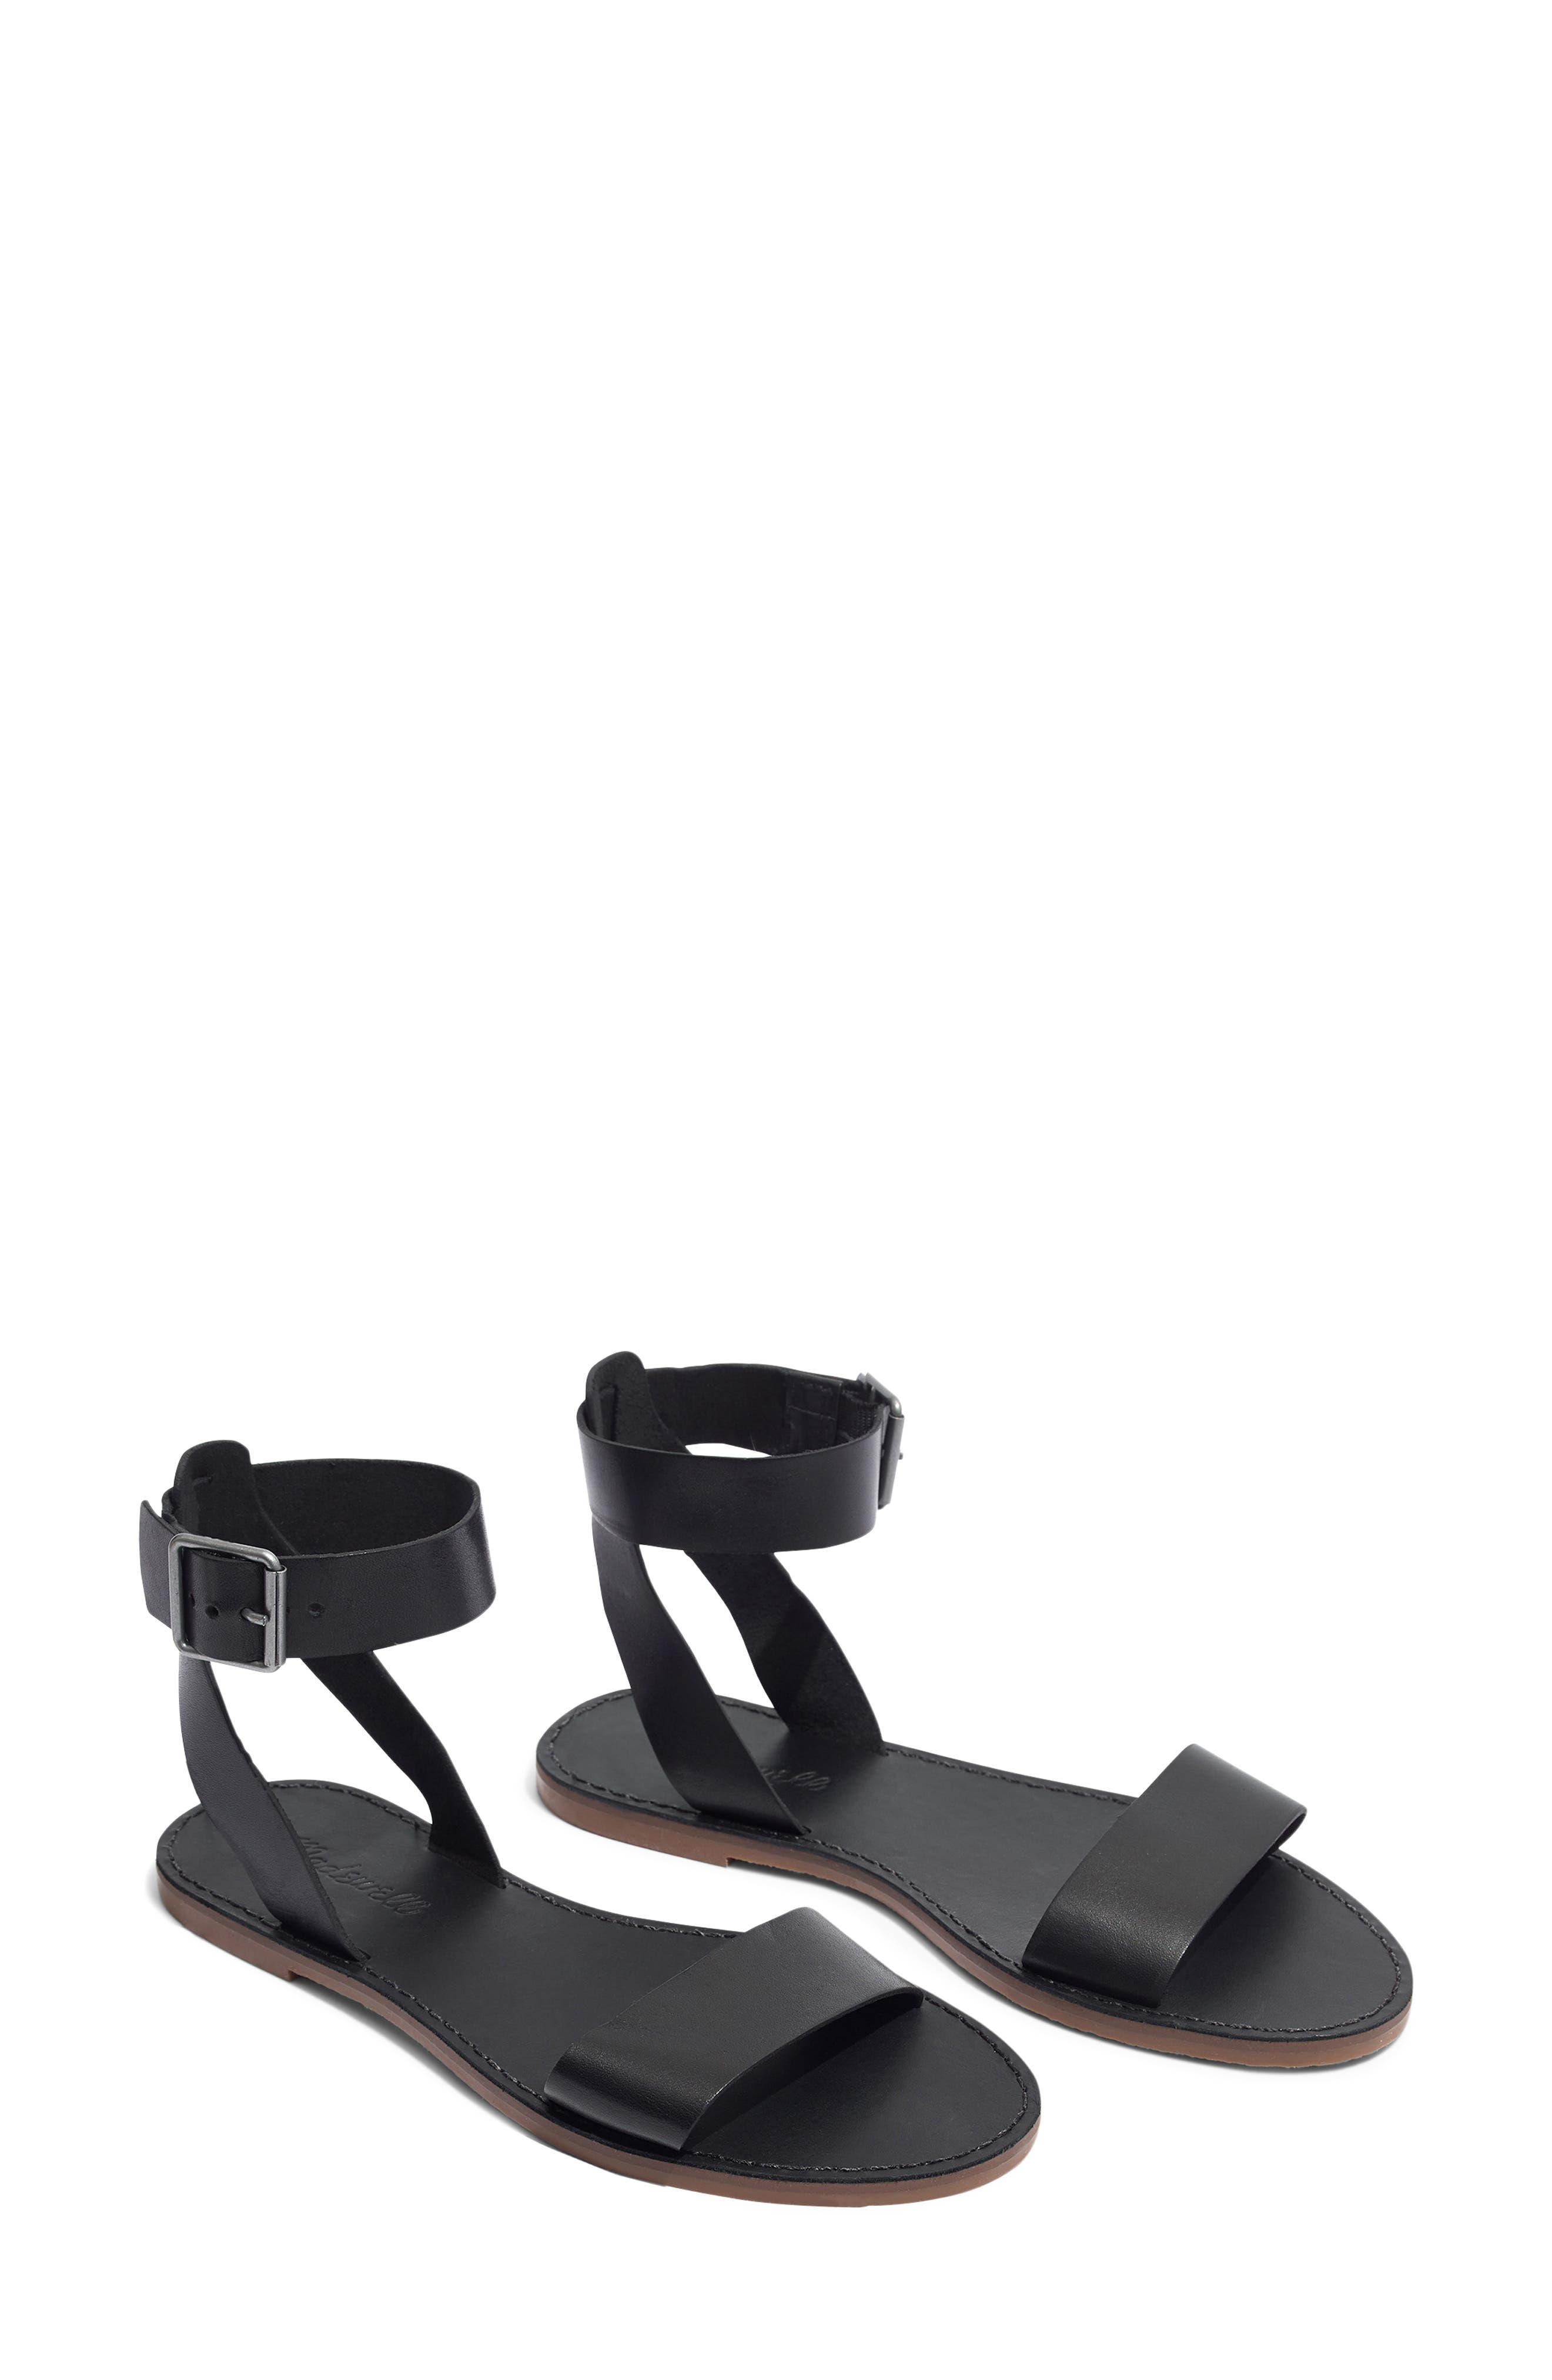 MADEWELL The Boardwalk Ankle Strap Sandal, Main, color, TRUE BLACK LEATHER